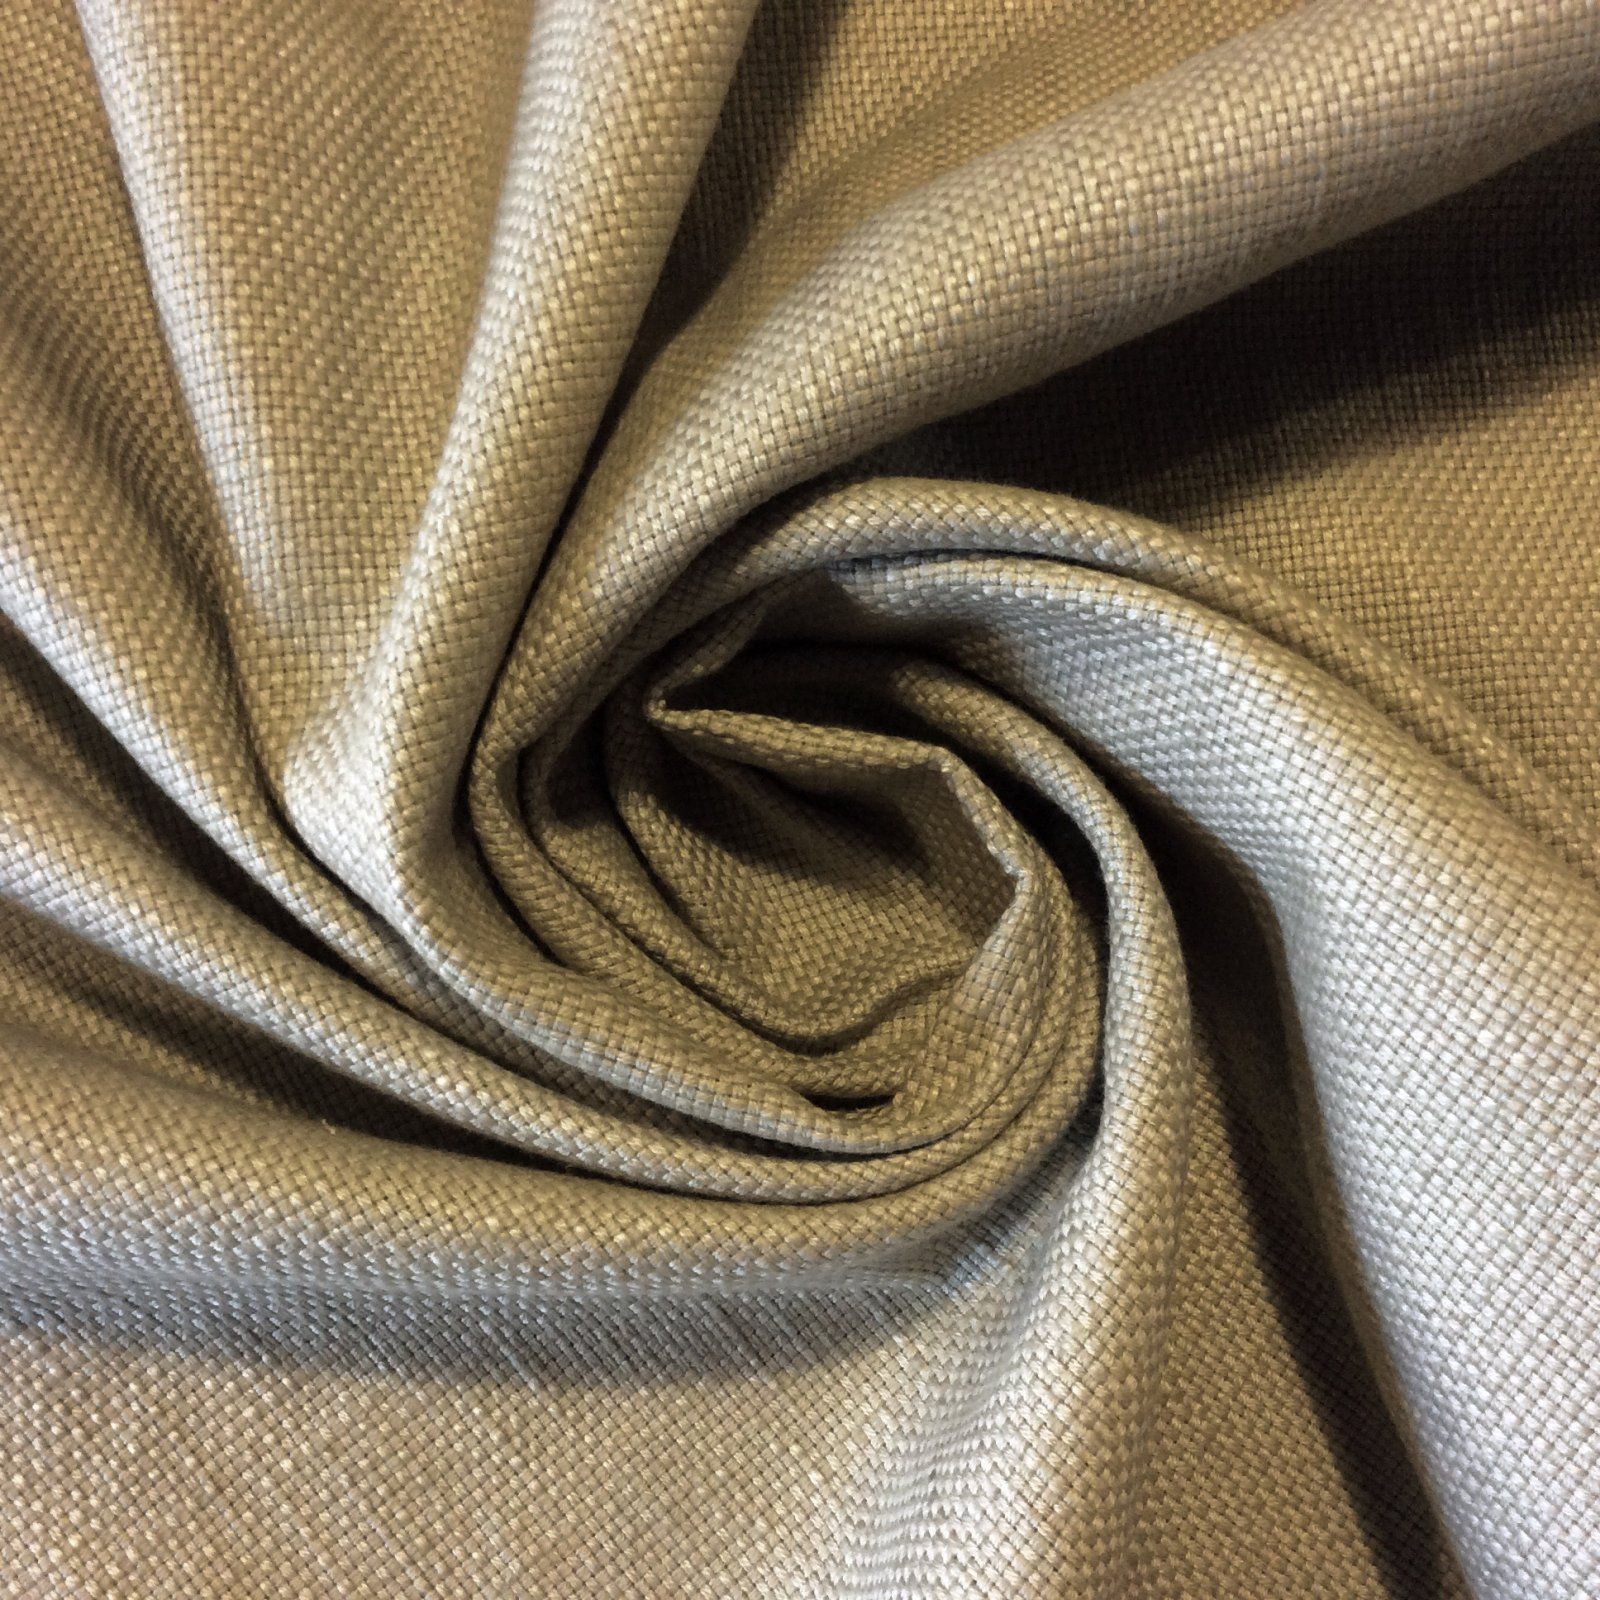 HD803 Desert Sand Heavy Textured Barkcloth Style Retro Look Solid Cotton Fabric Drapery Upholstery